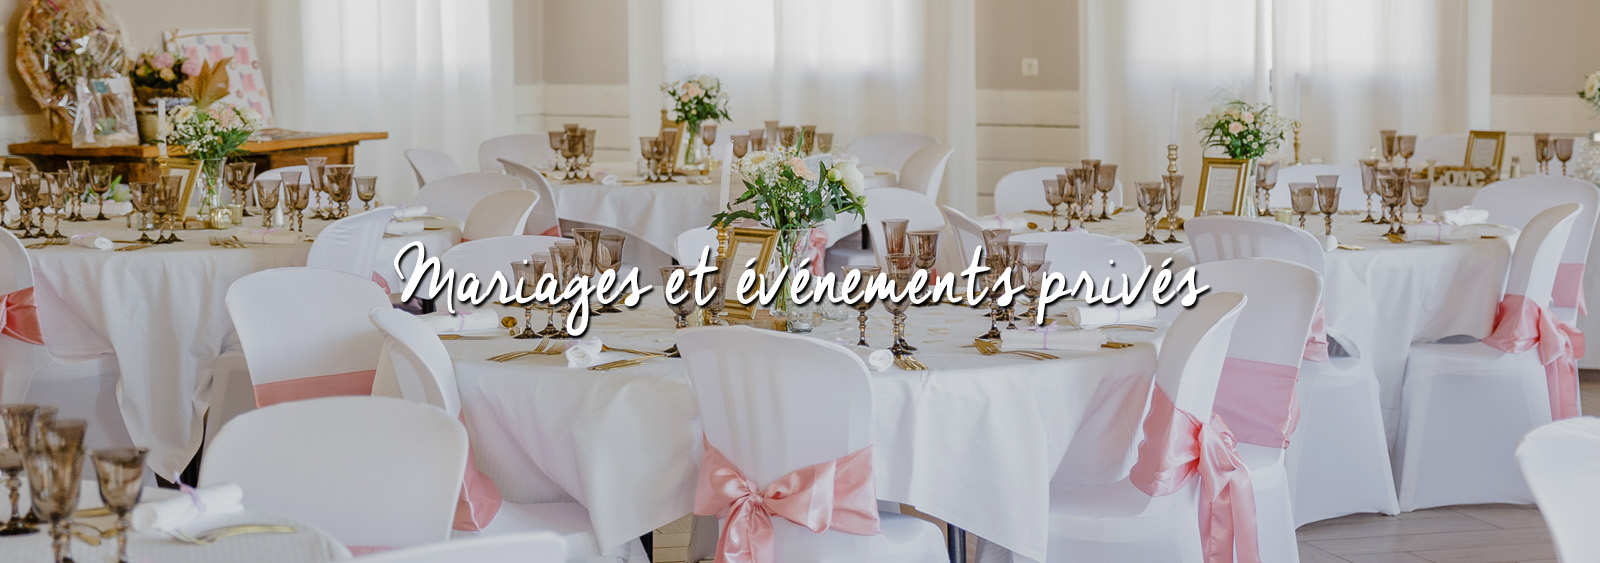 Chateau-lavalade-mariages-et-evenements-prives-slider